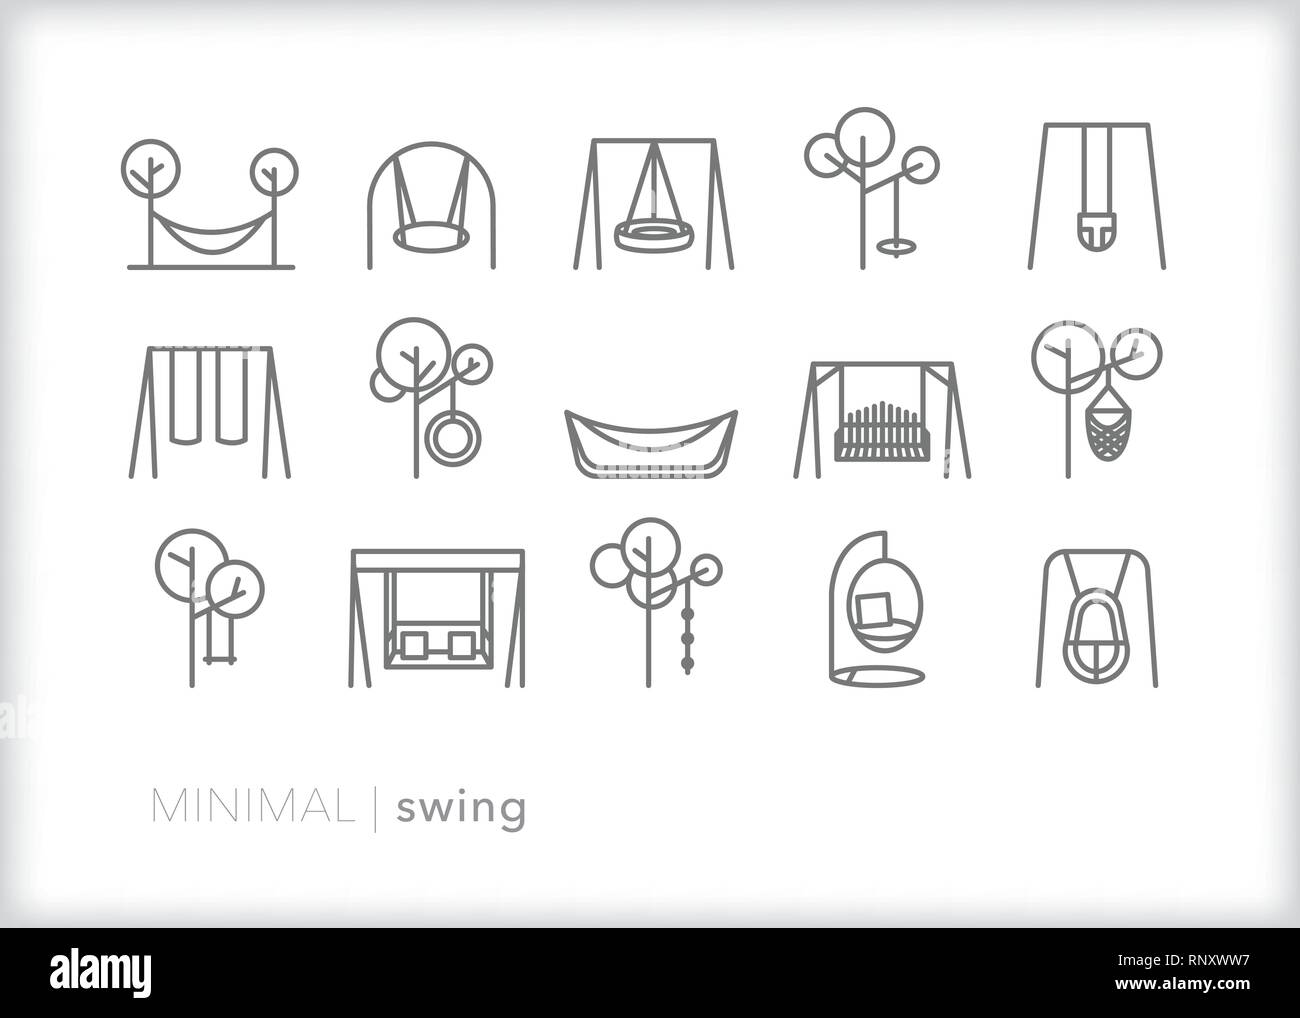 Set of 15 swing line icons for relaxing on a summer day outside including porch swing, tire swing, park swing, playground swing, baby swing, swing set - Stock Vector